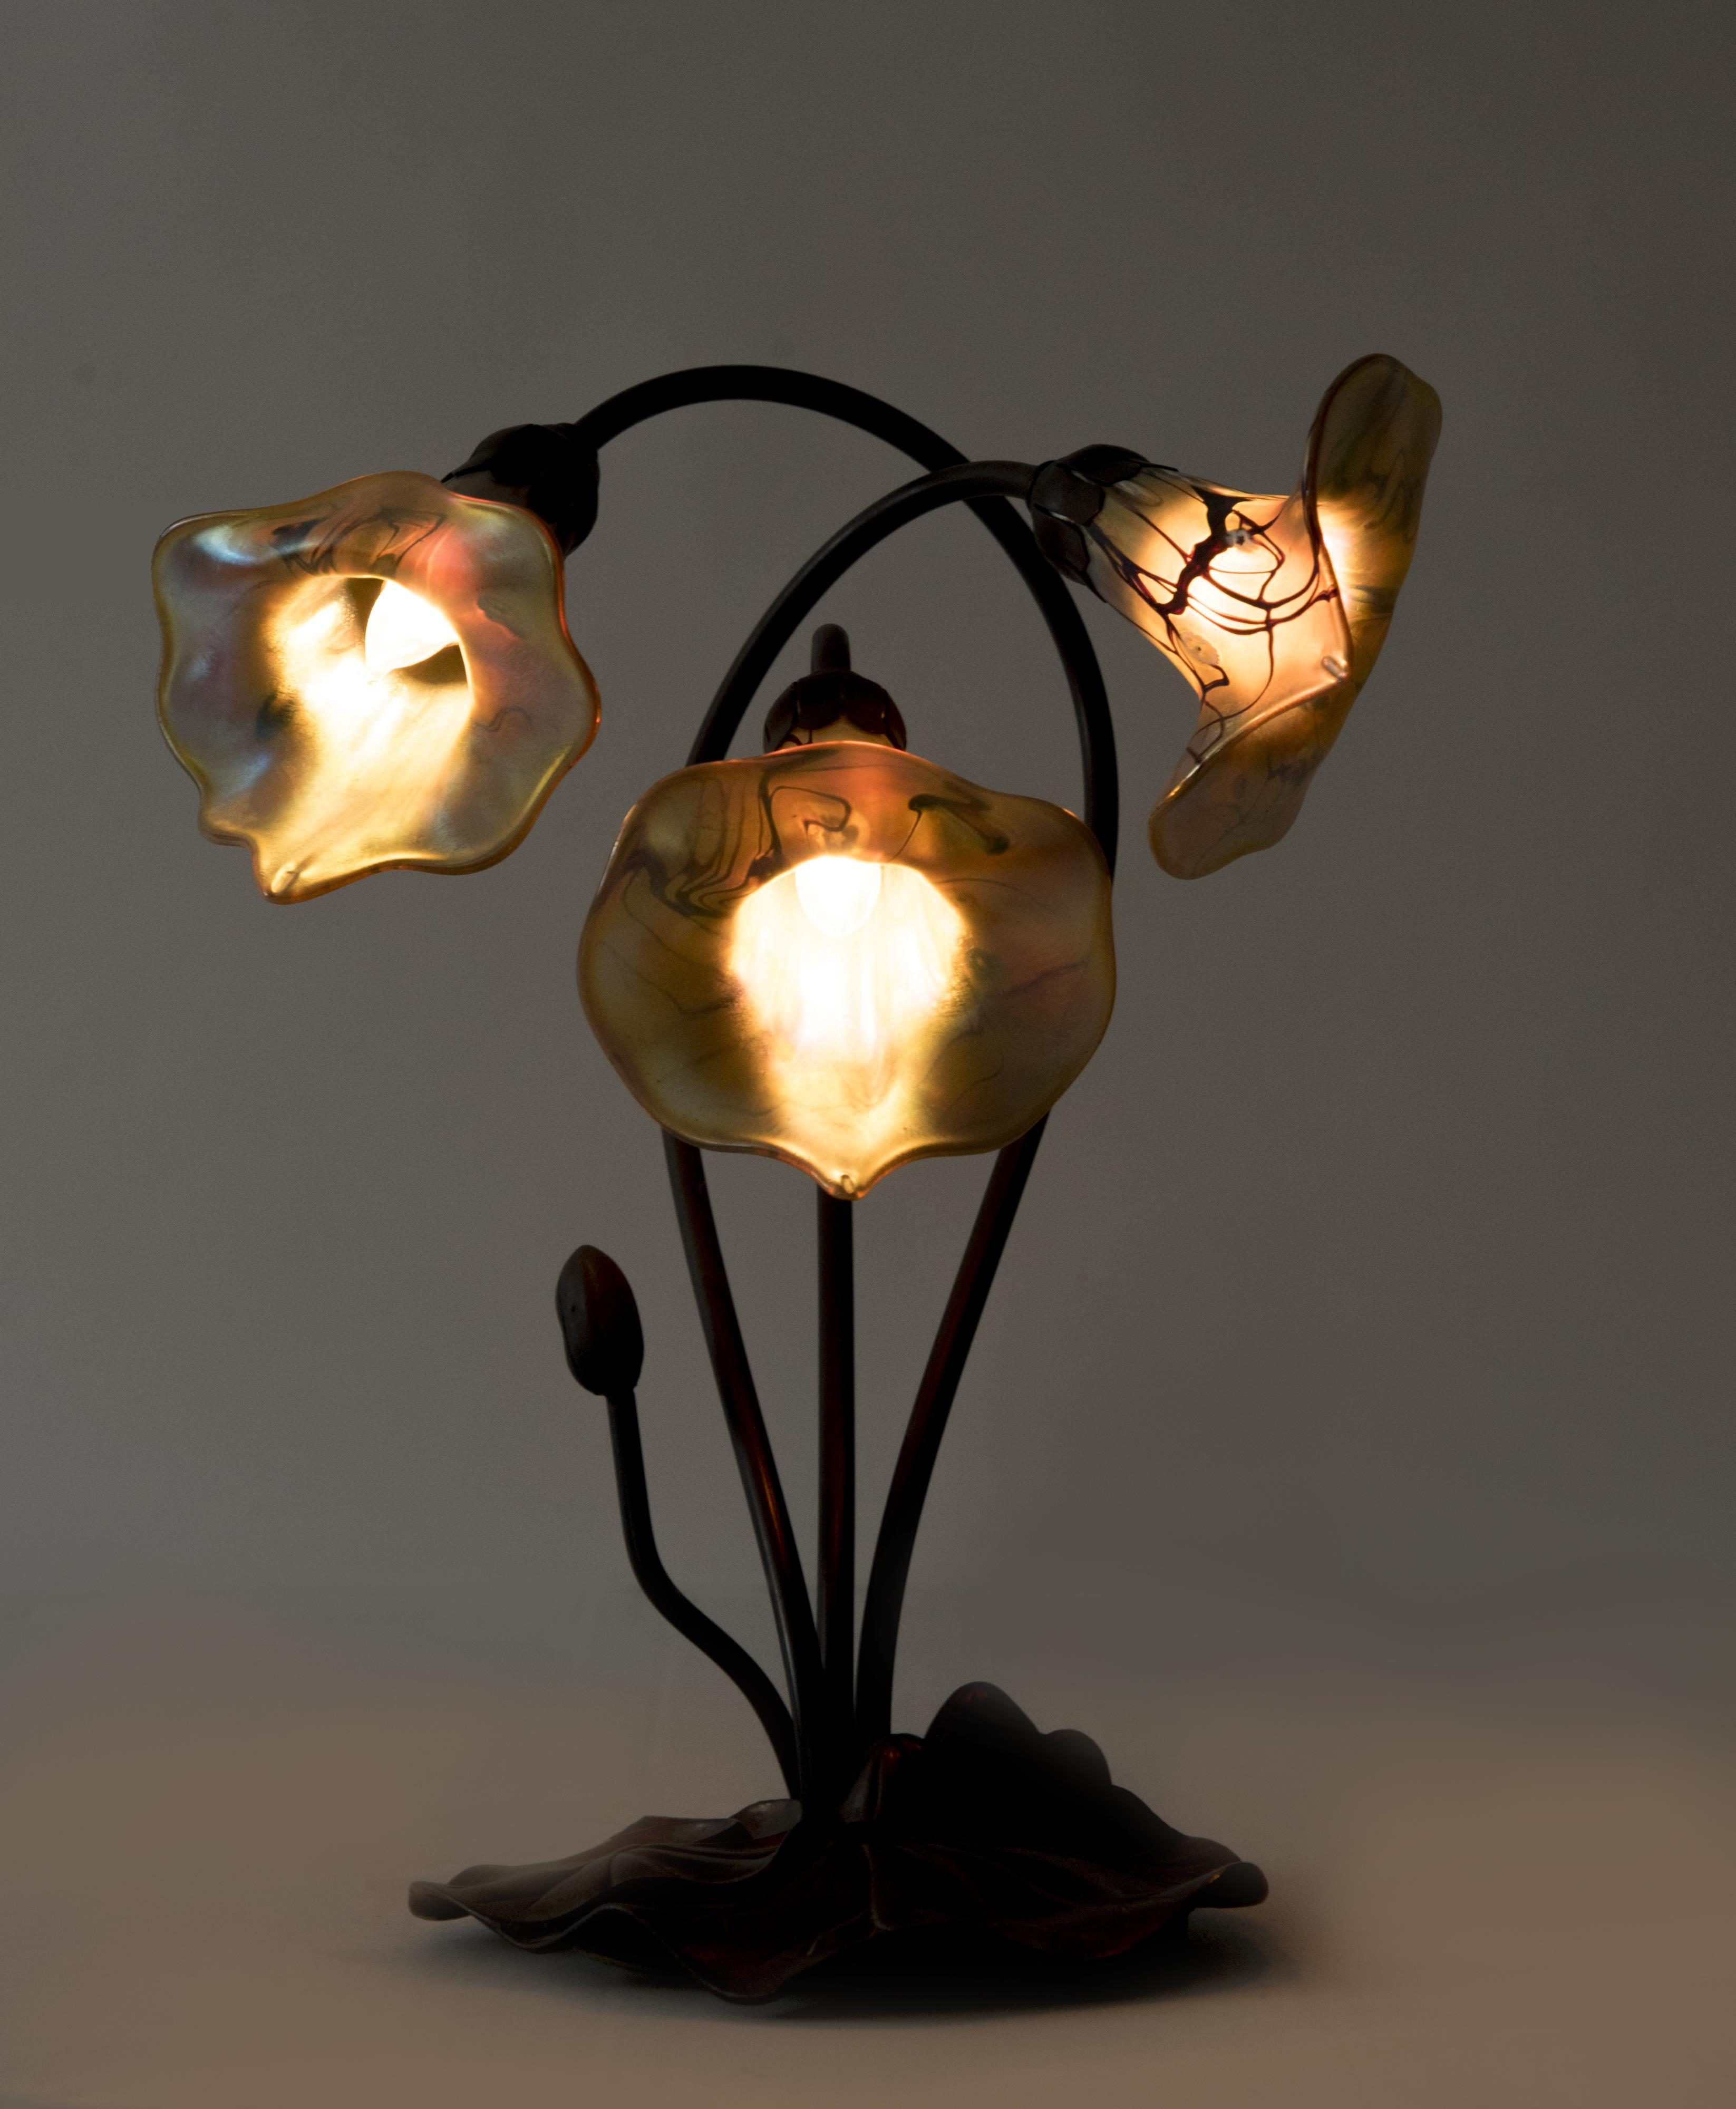 Art Nouveau Lily Pad Lamp Height: 13 1/2 inches